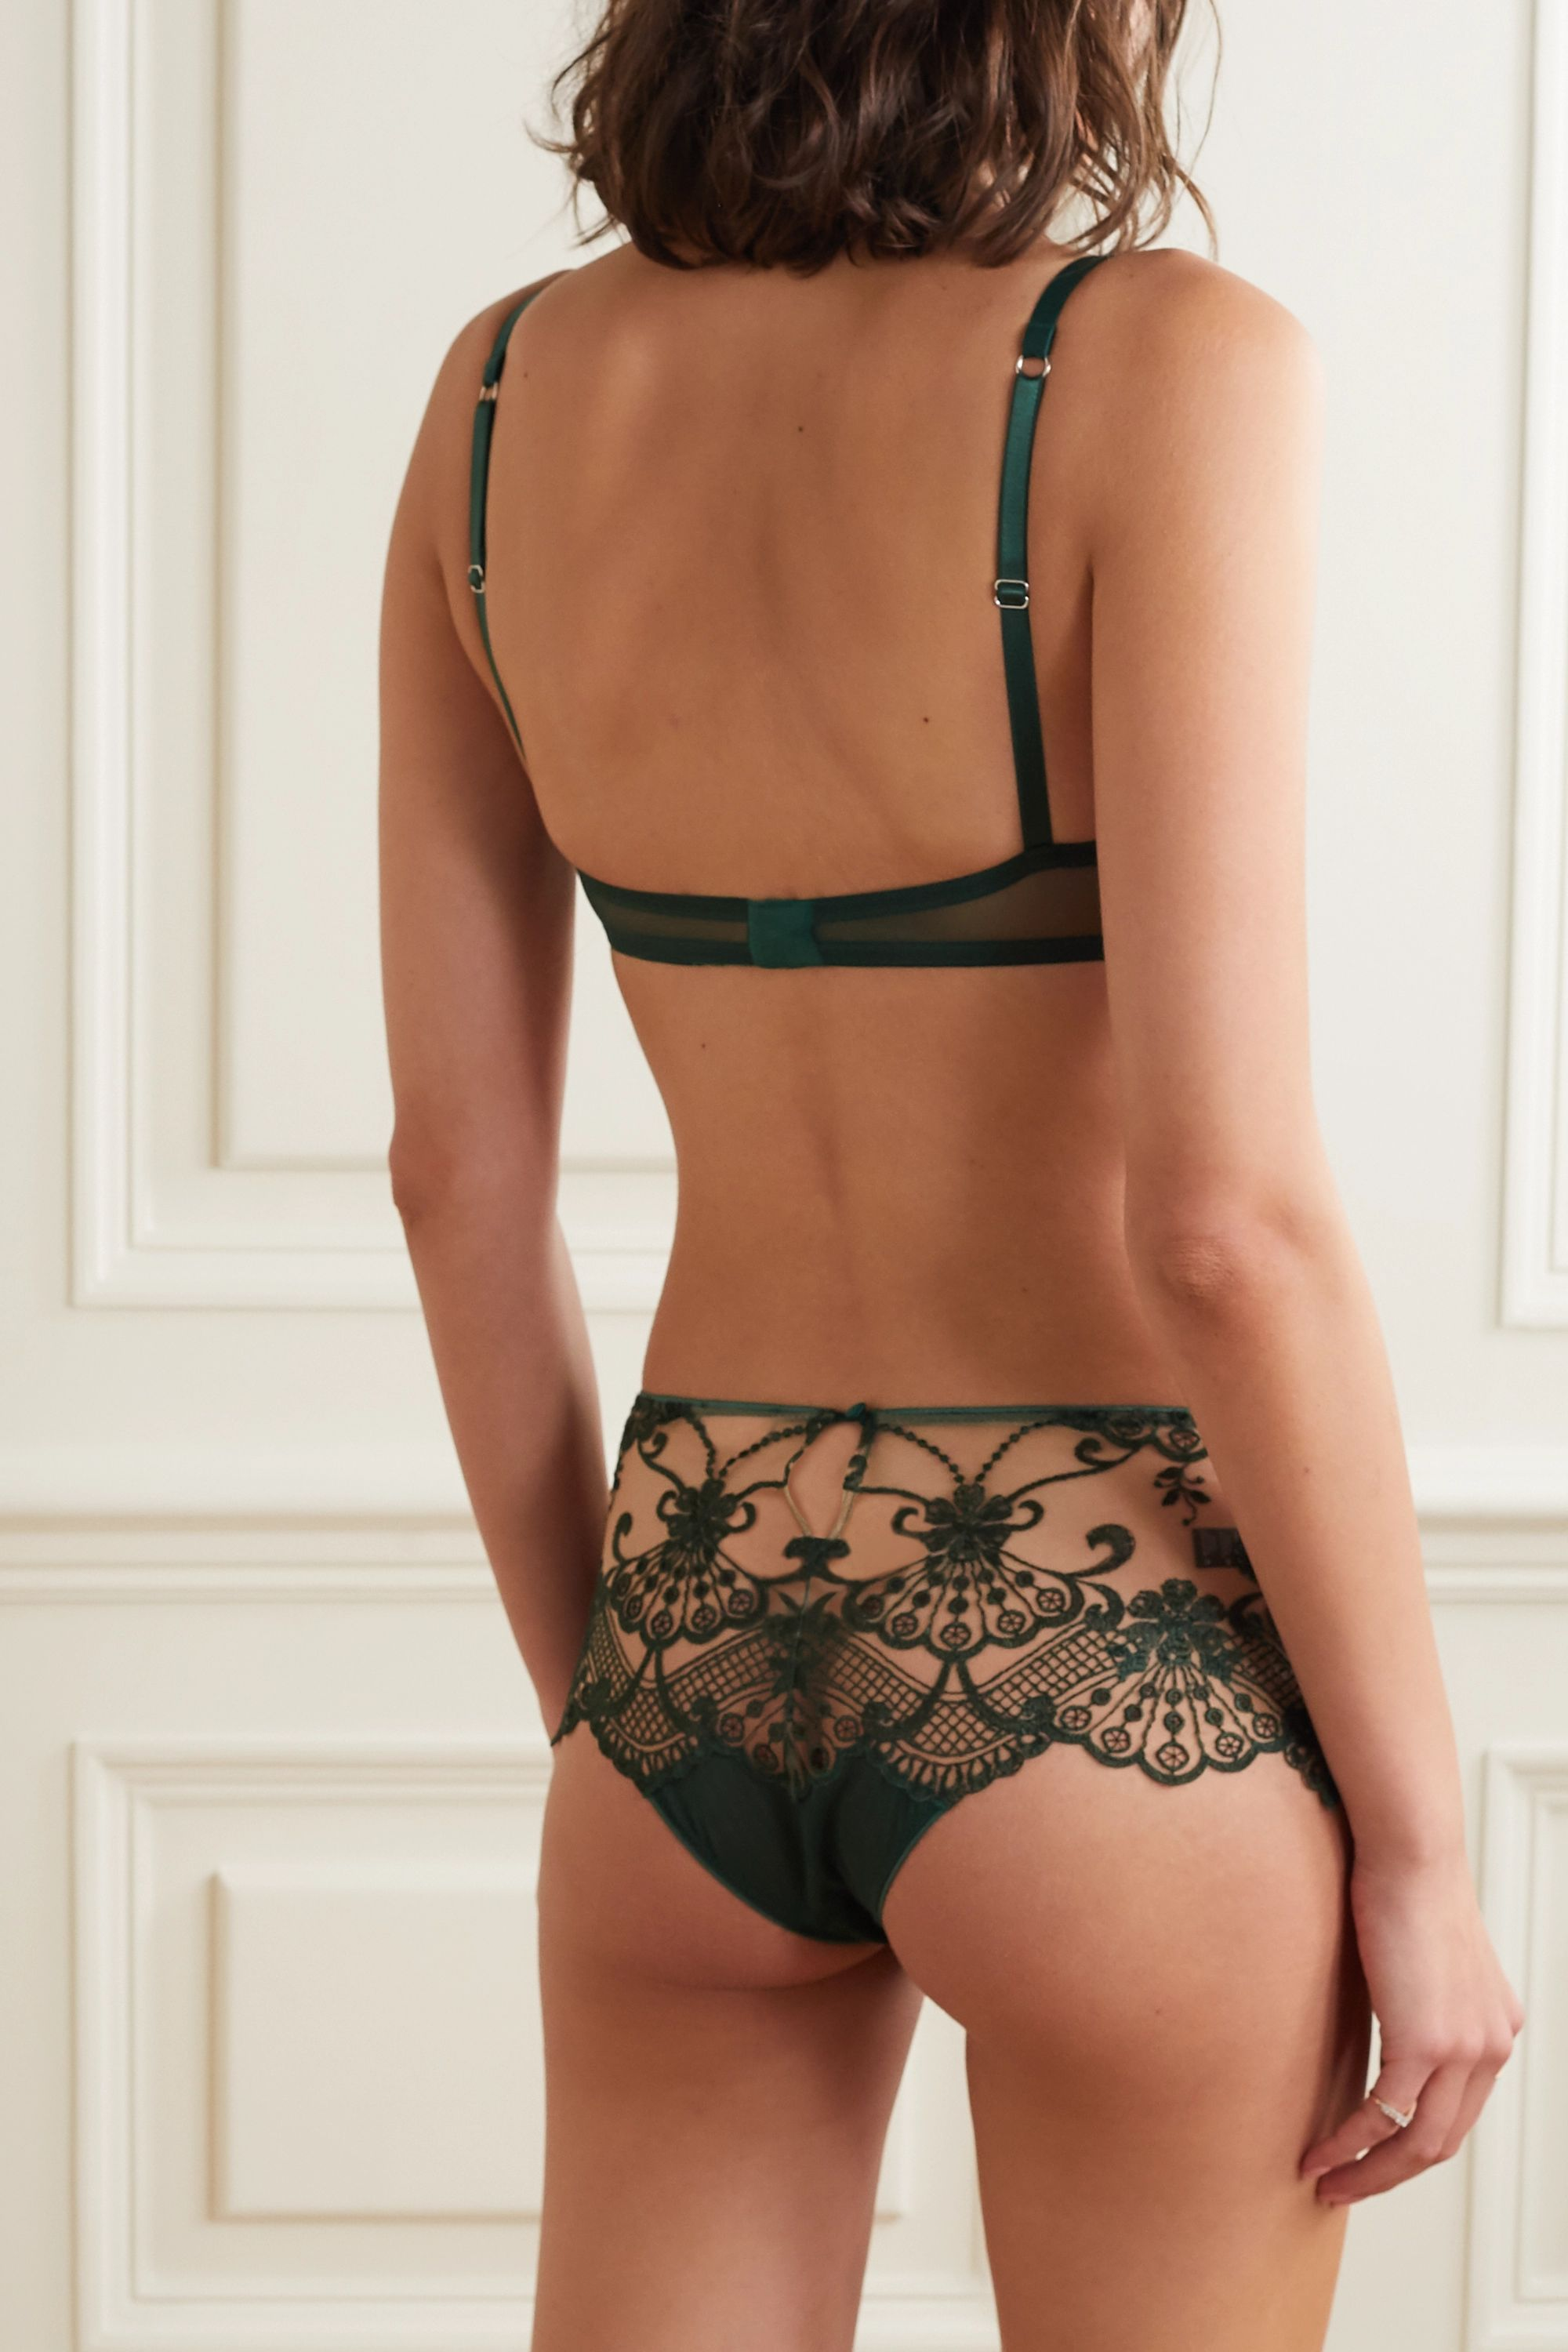 I.D. Sarrieri Midnight Dream embroidered tulle and satin briefs